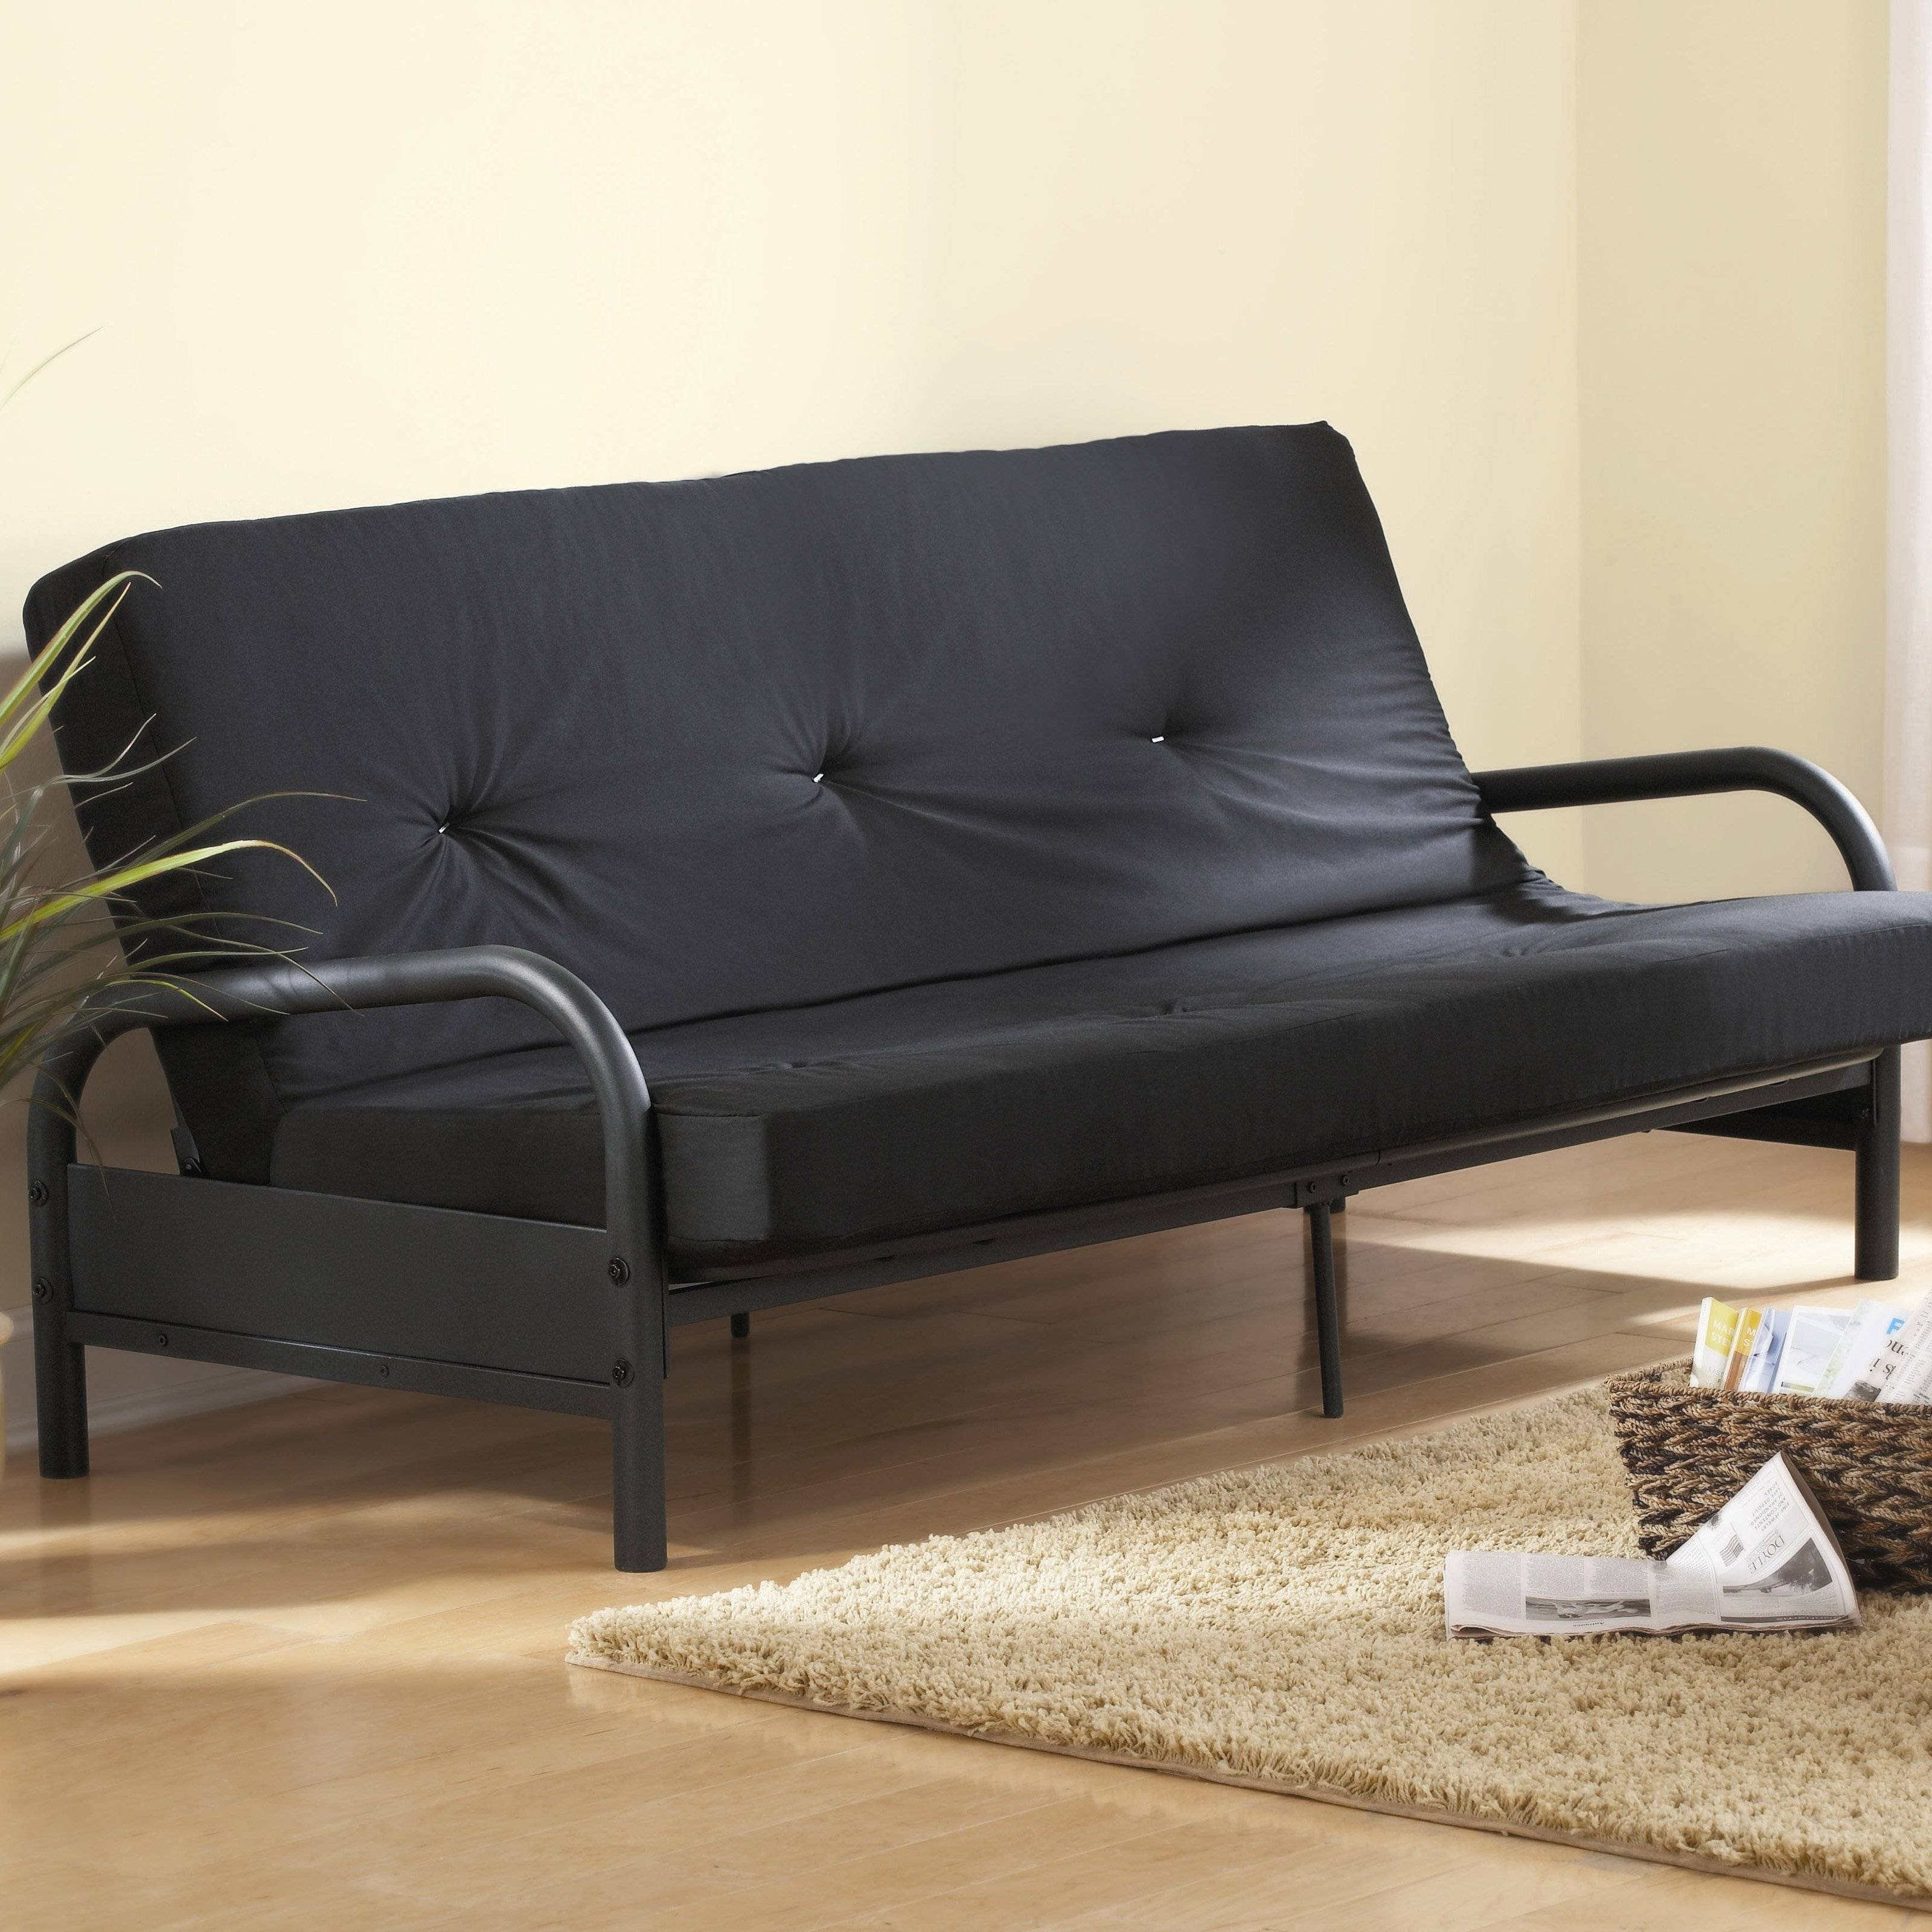 Furniture: Couch Covers At Walmart To Make Your Furniture Stylish in Wallmart Sofa (Image 10 of 25)